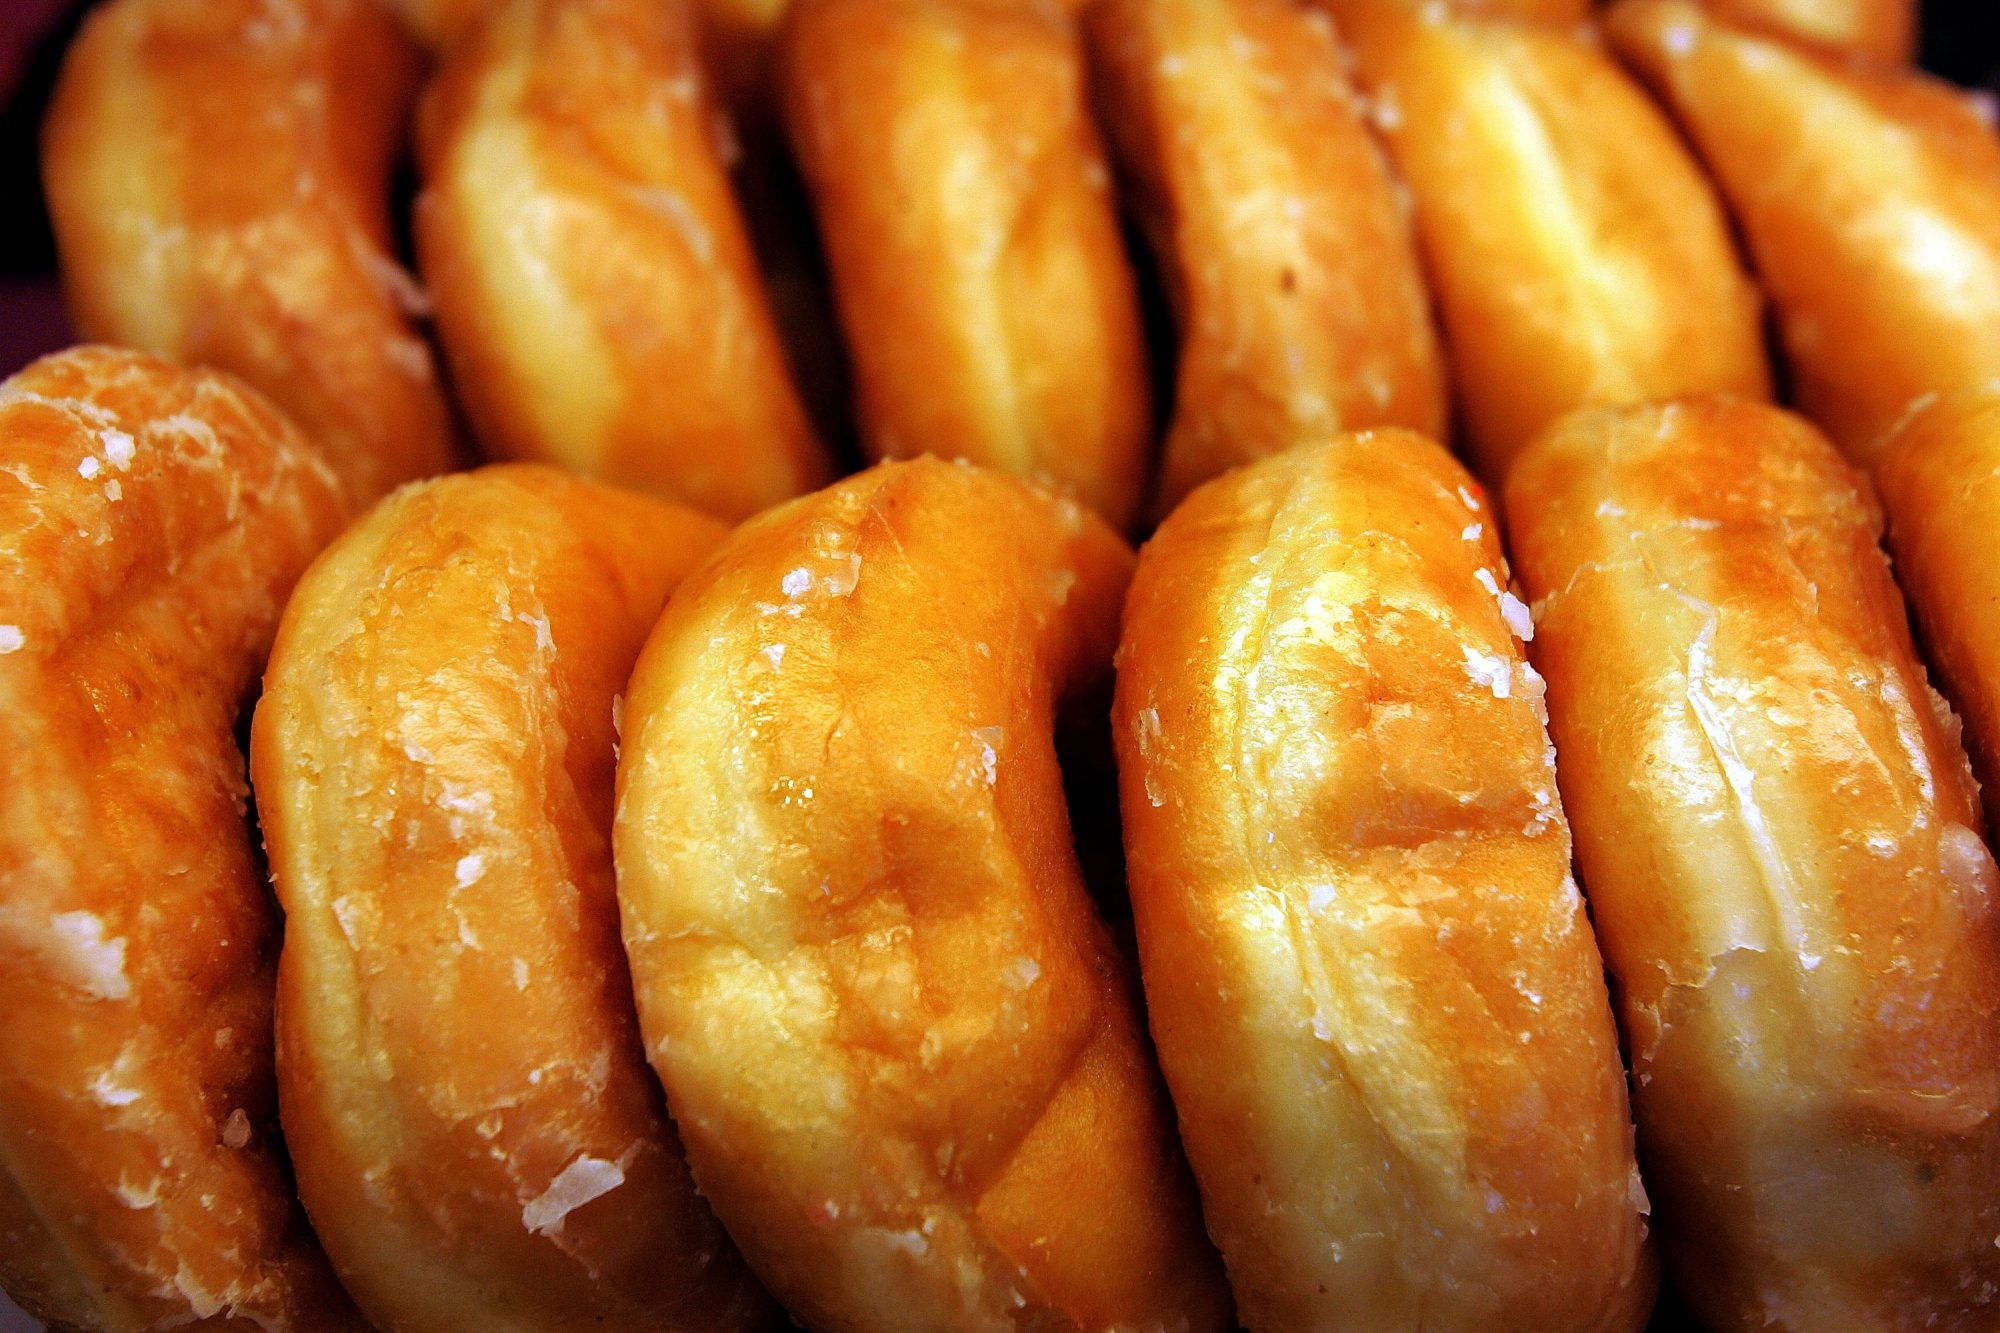 EC: Dunkin' Donuts Raises Prices as Fast Food Breakfast Competition Gets Fierce